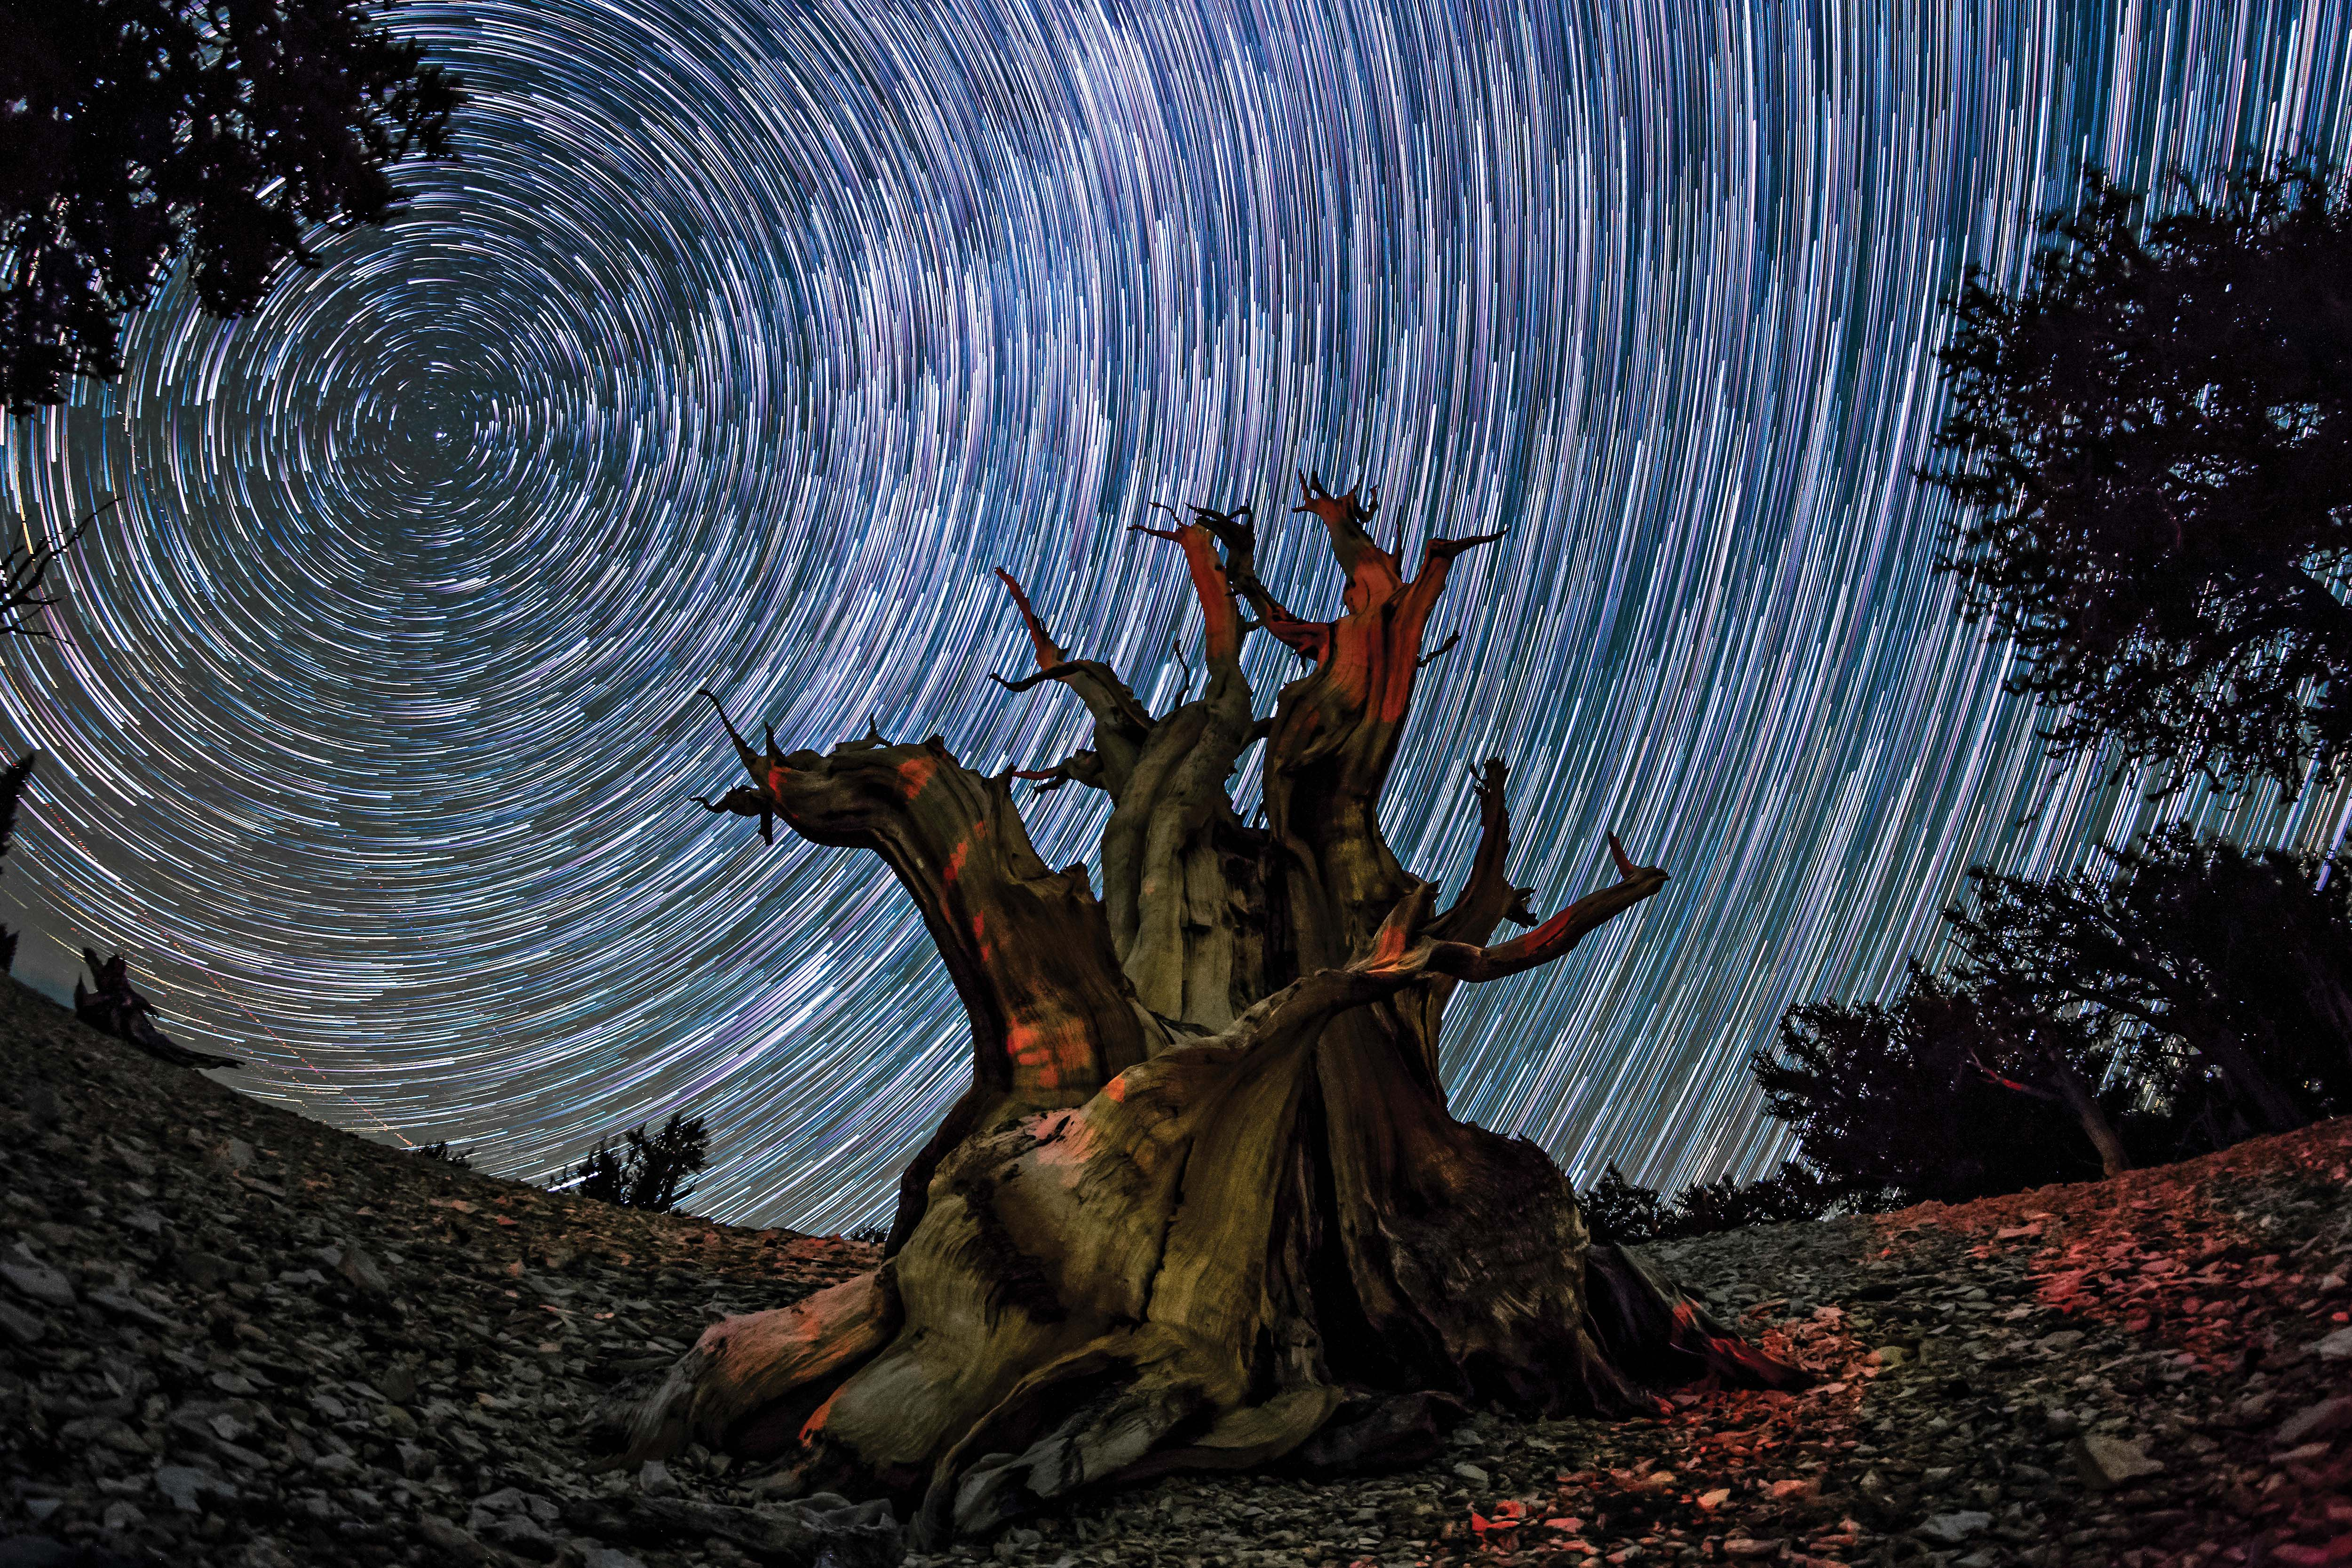 A long exposure shot taken at Ancient Bristlecone Pine Forest in California.